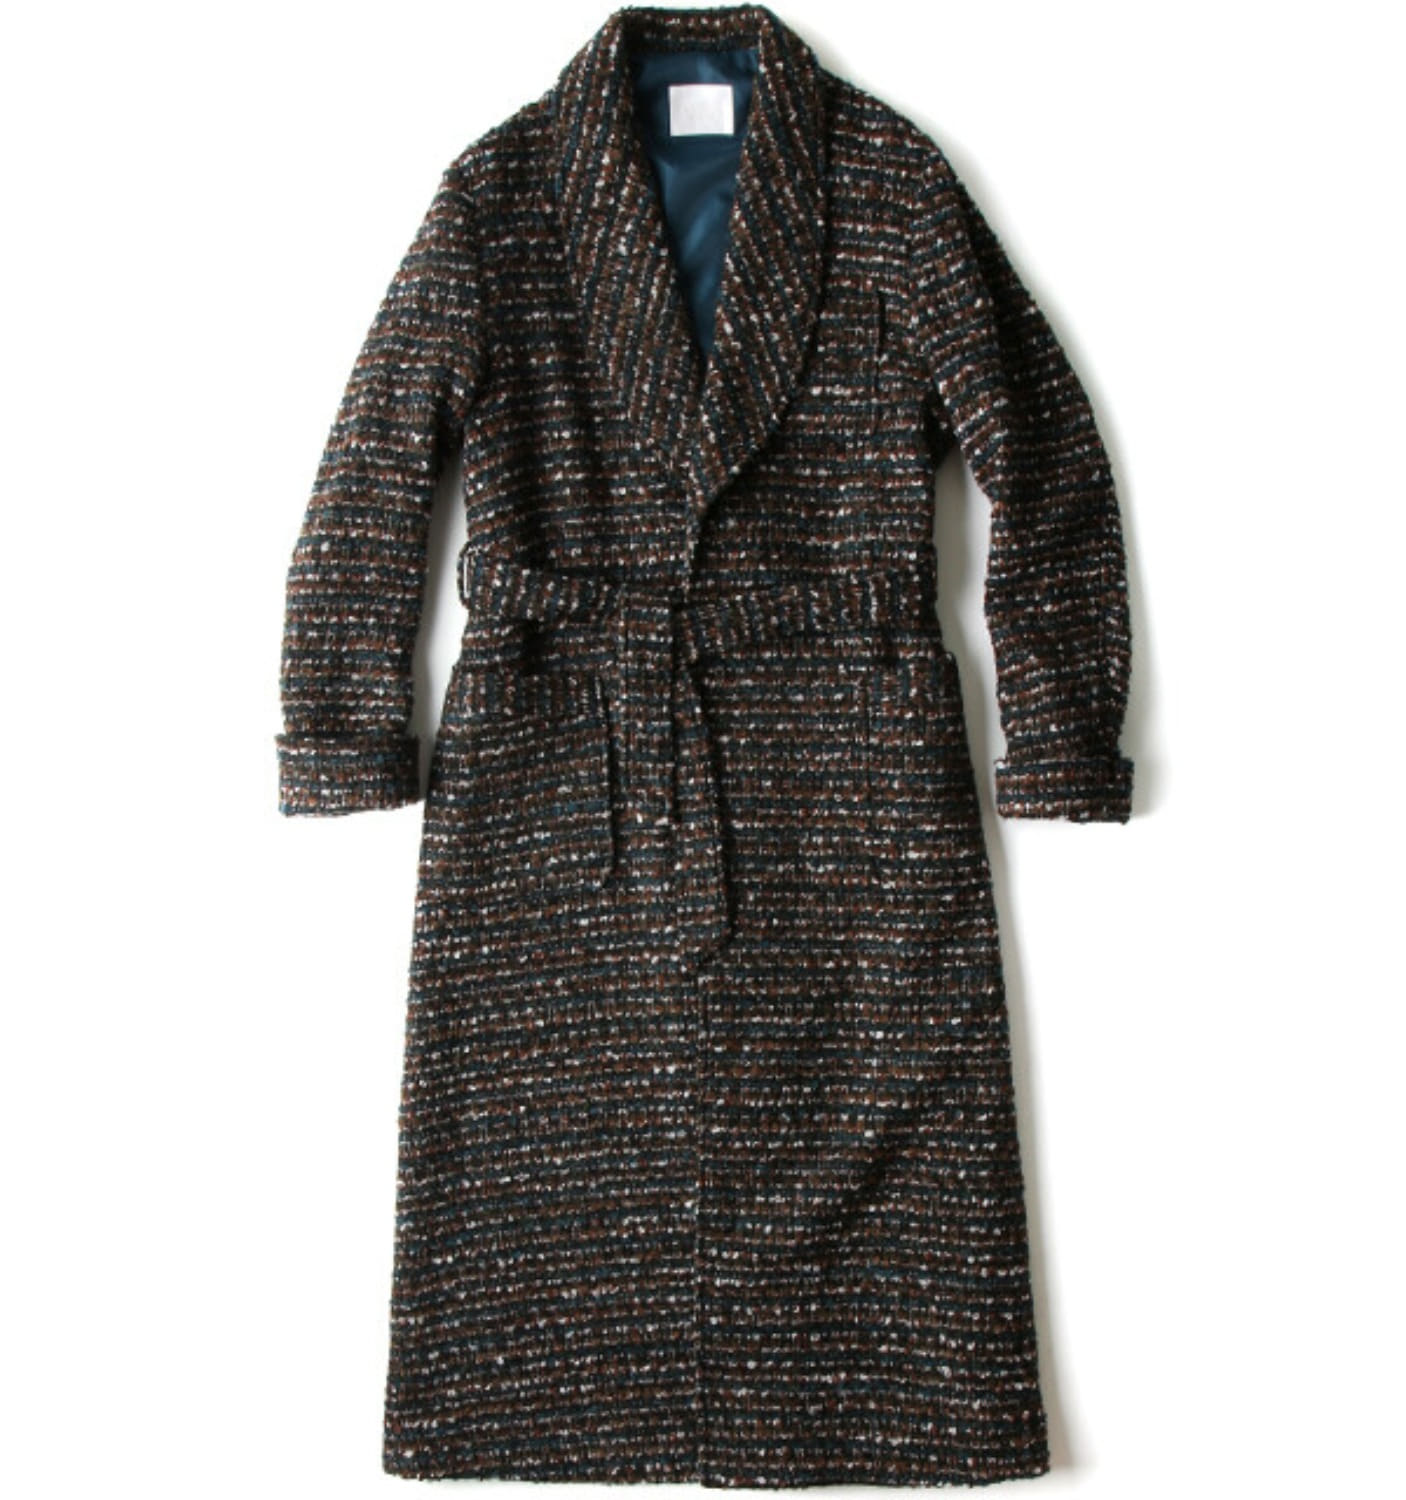 RELAXED ROBE COAT MULTICOLOR FANCY TWEED